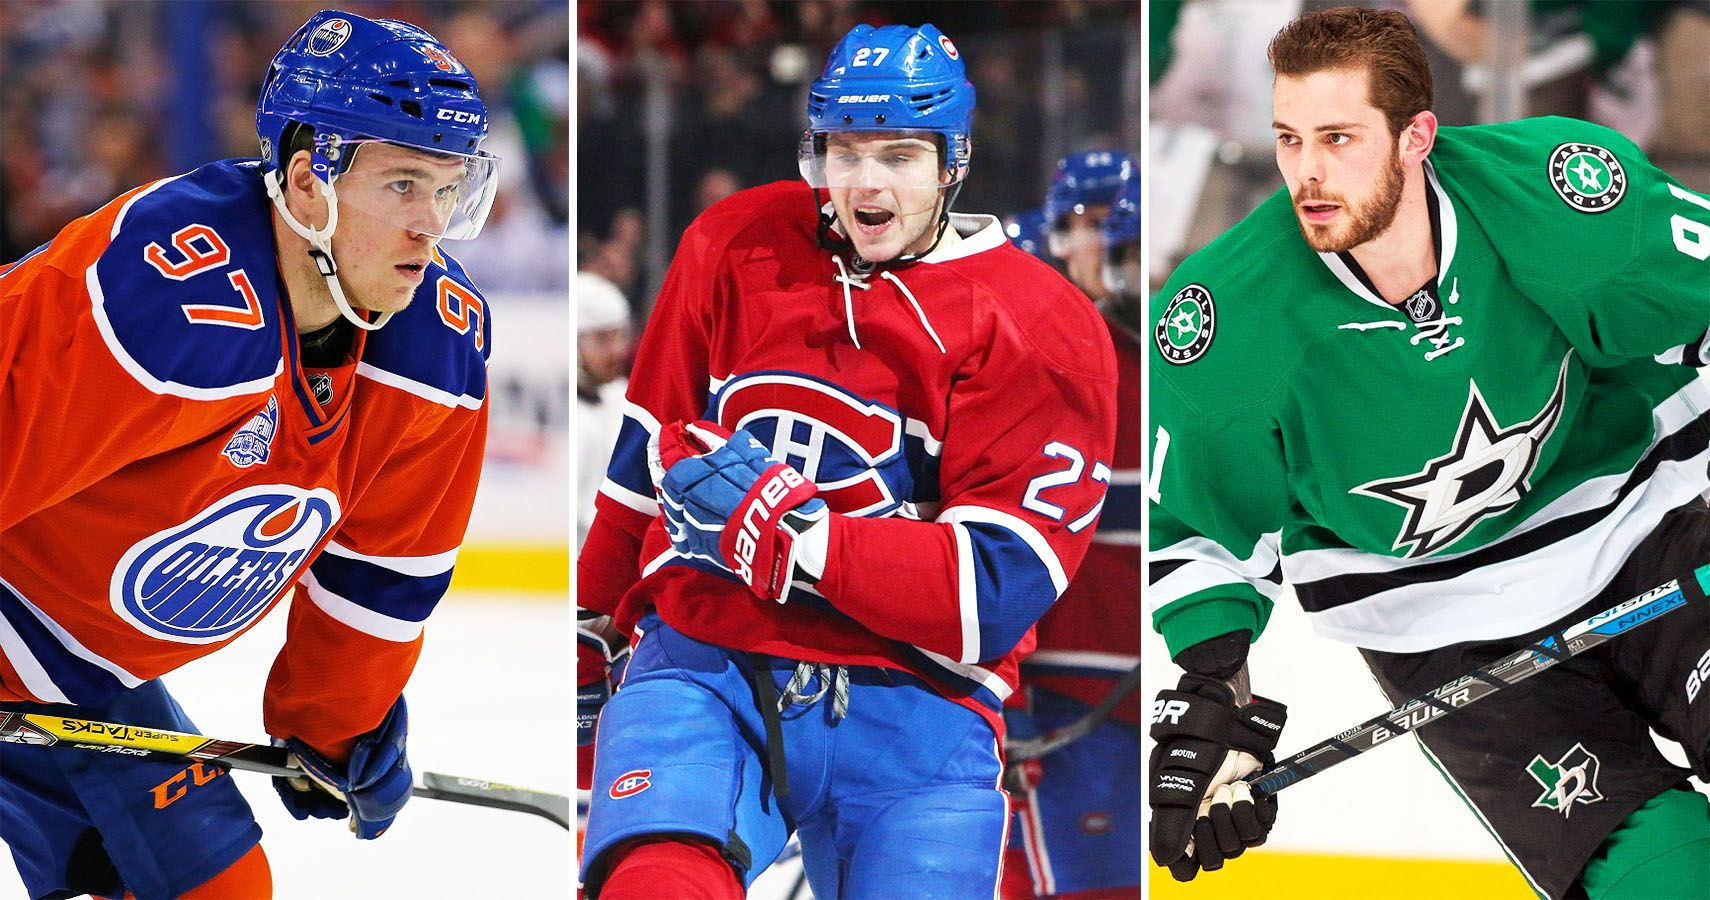 Power Ranking The Top 20 NHL Players Aged 25 And Younger